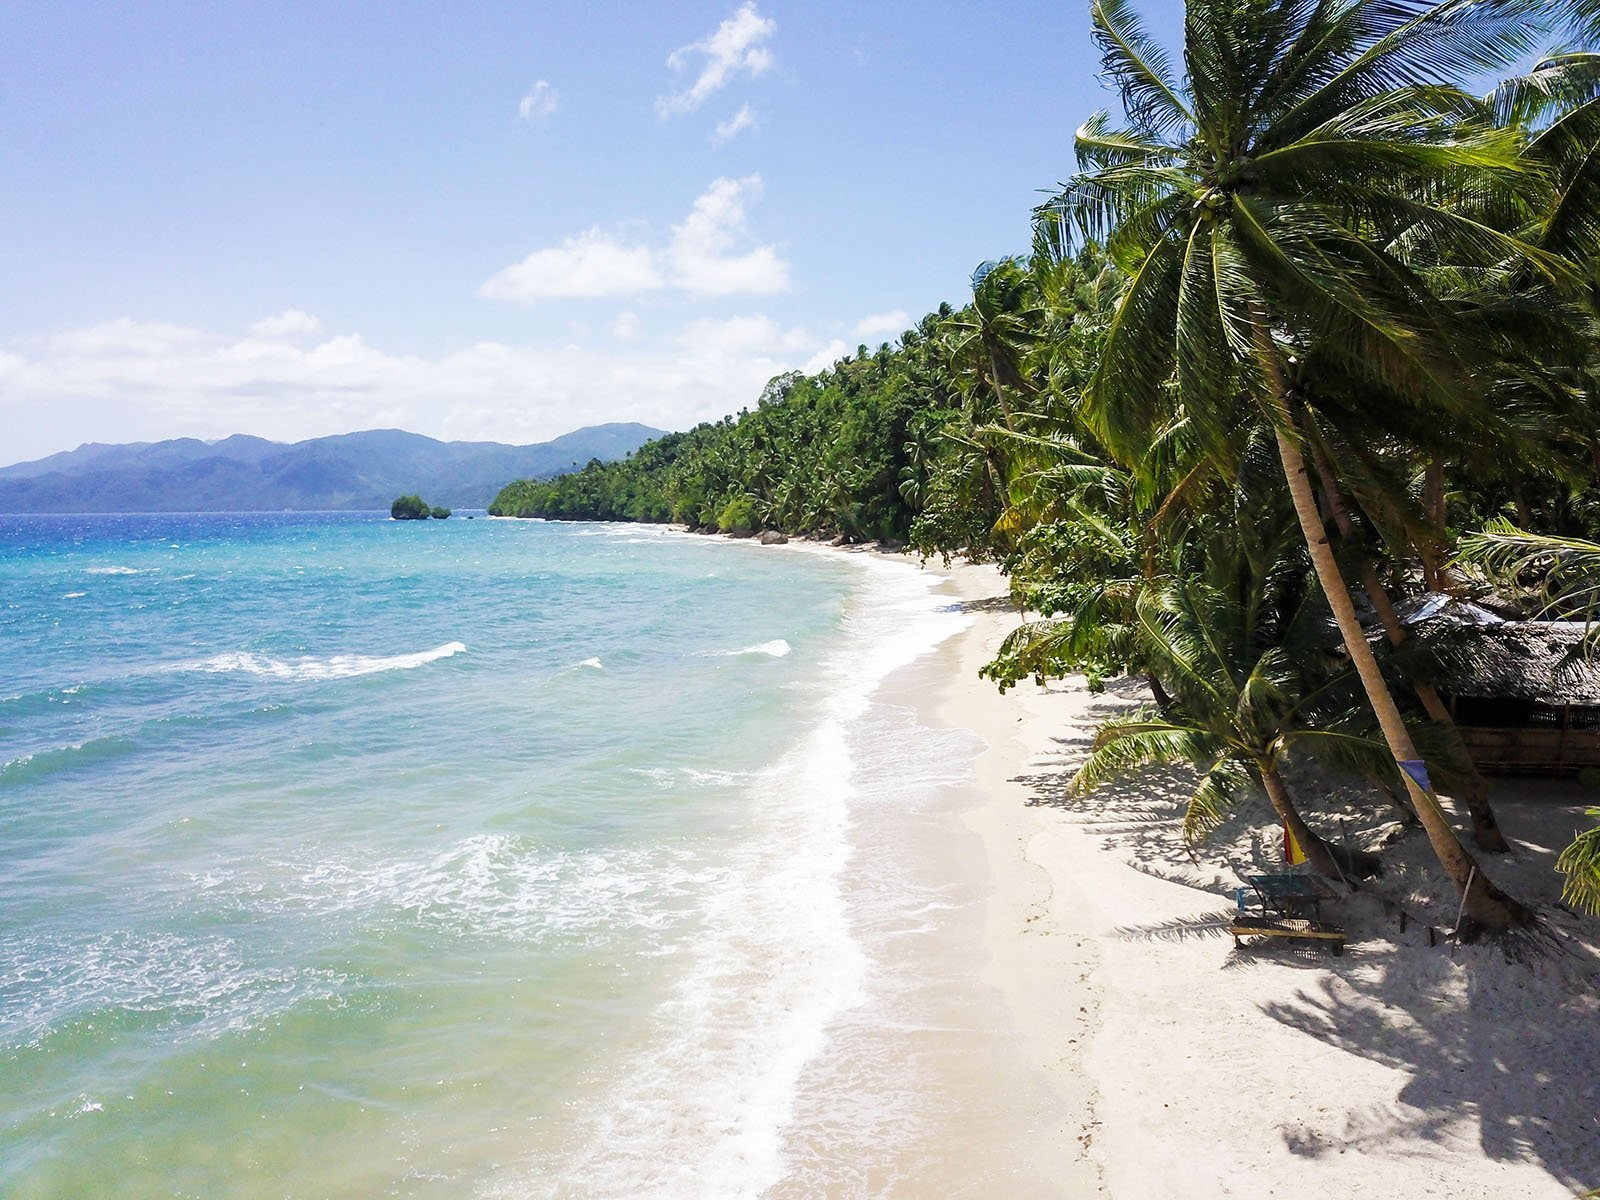 Tourist Spots in Liloan: Tagbak Marine Park and Molopolo Beach